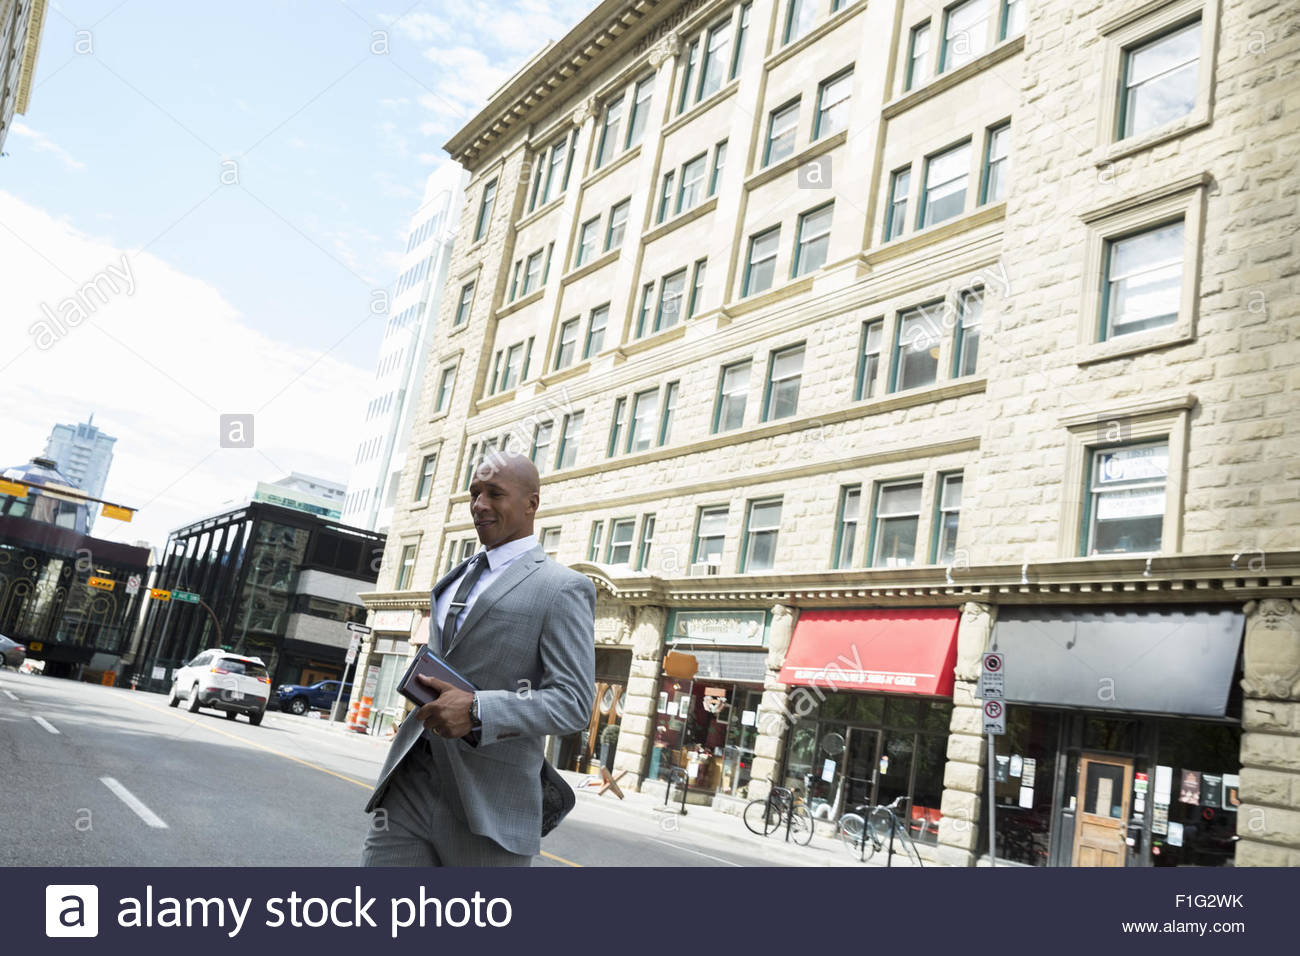 Businessman crossing urban street - Stock Image